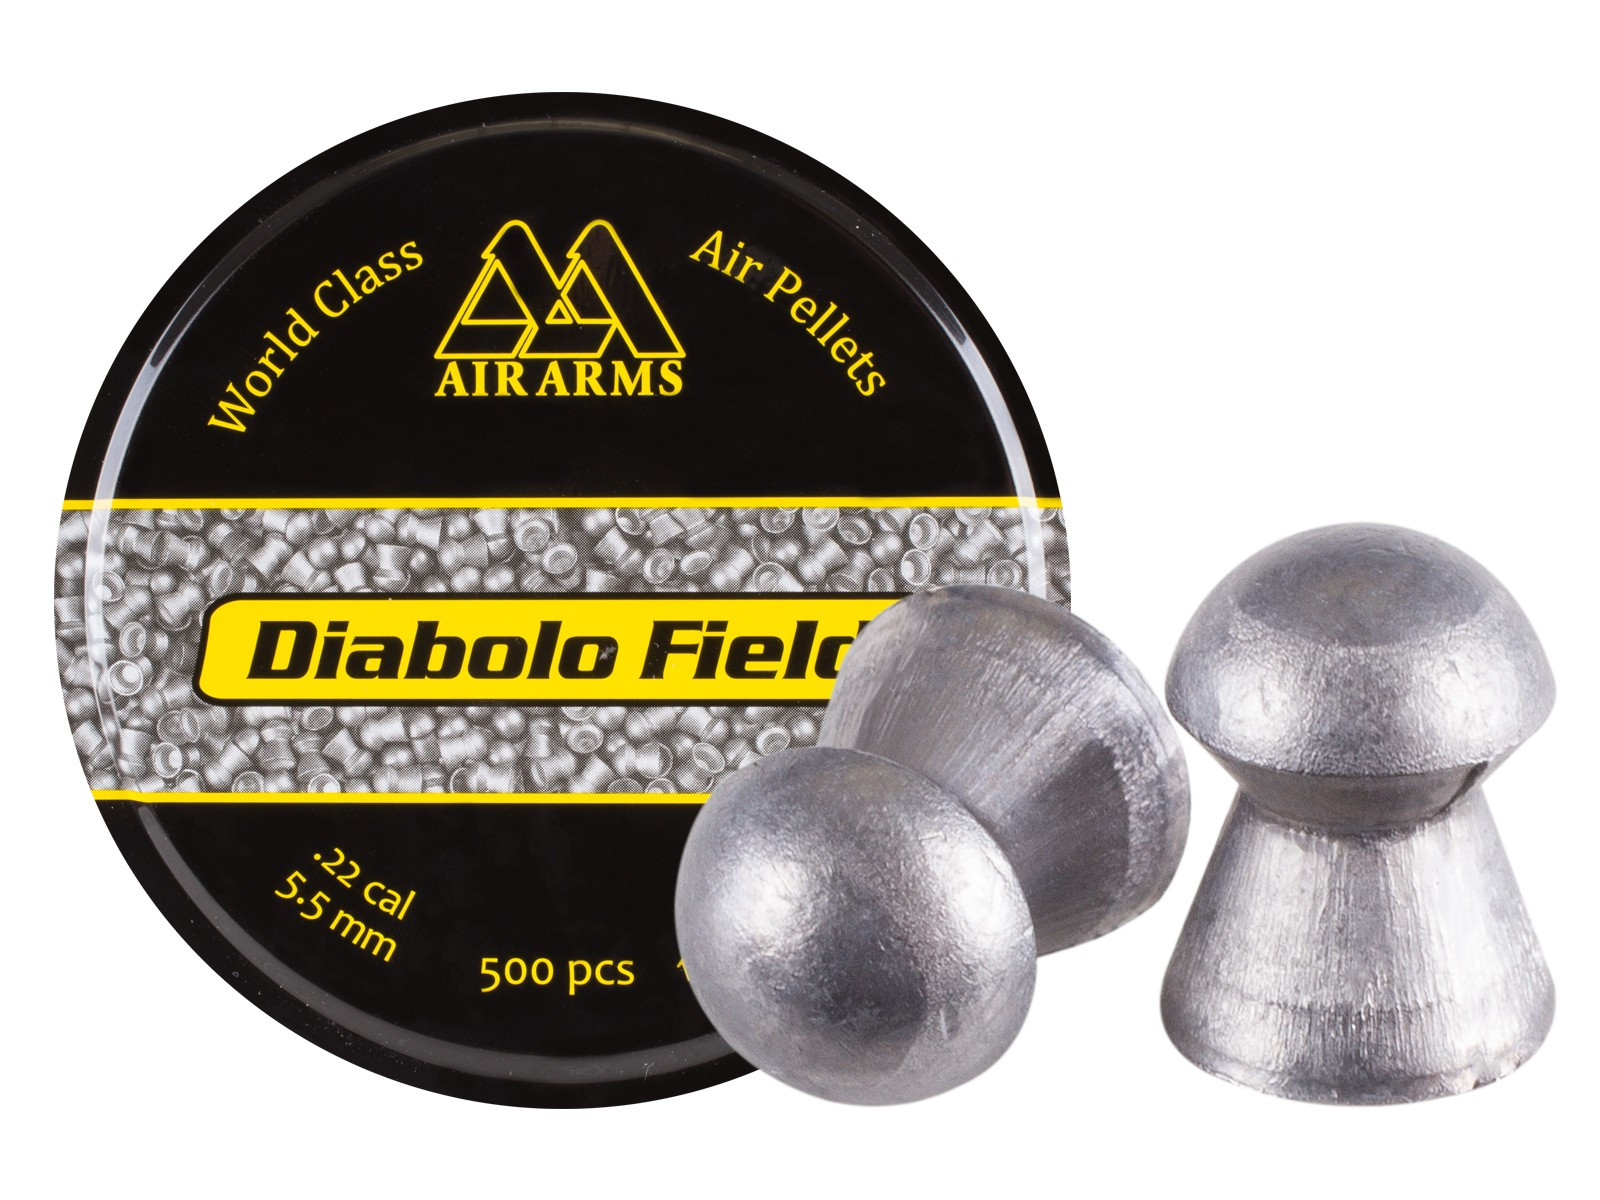 Air Arms Diabolo Field .22 Cal (5.51mm), 16 gr - 500ct